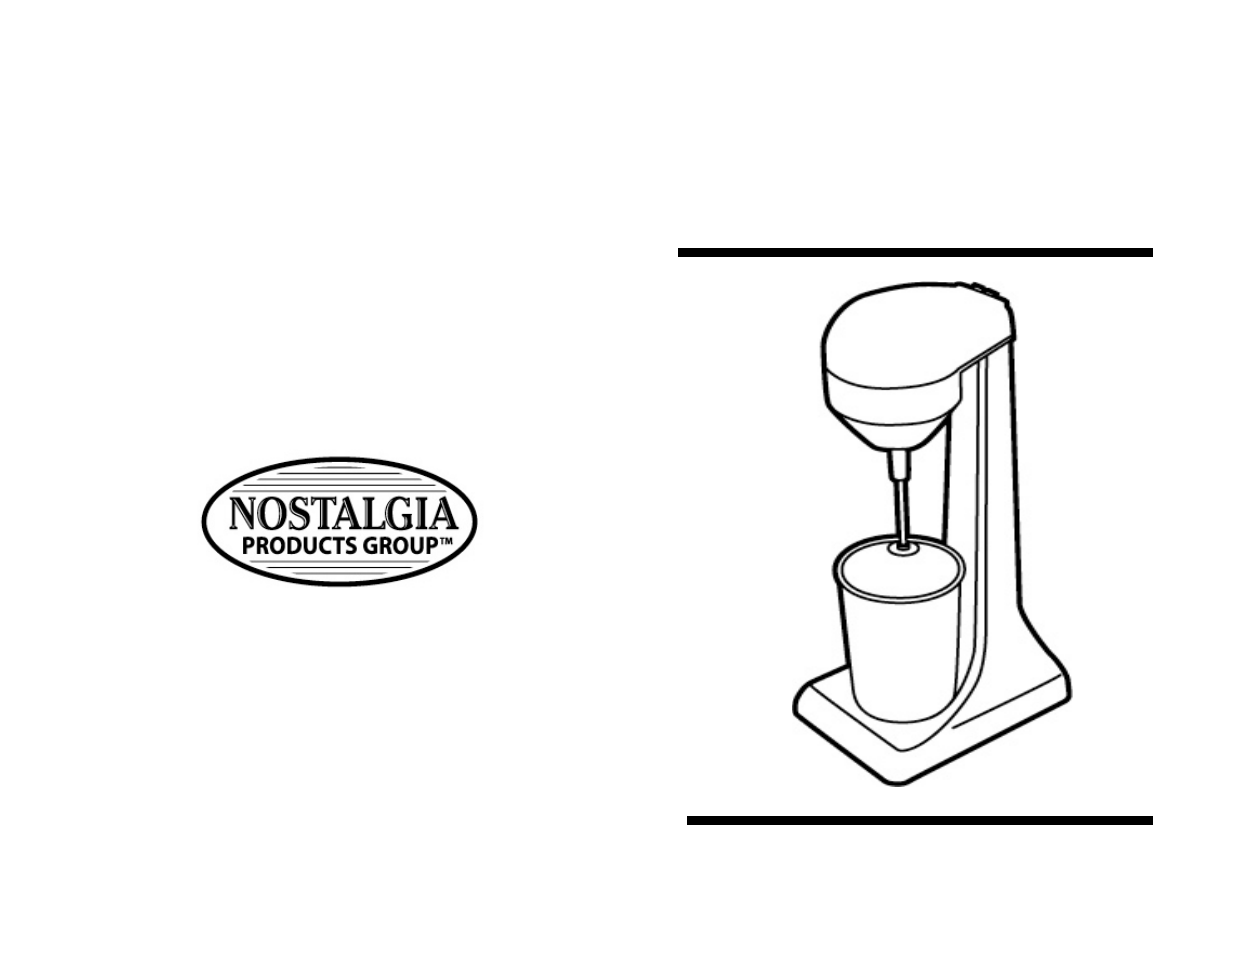 Nostalgia Electrics DRINK MIXER/BLENDER DMB-790 User